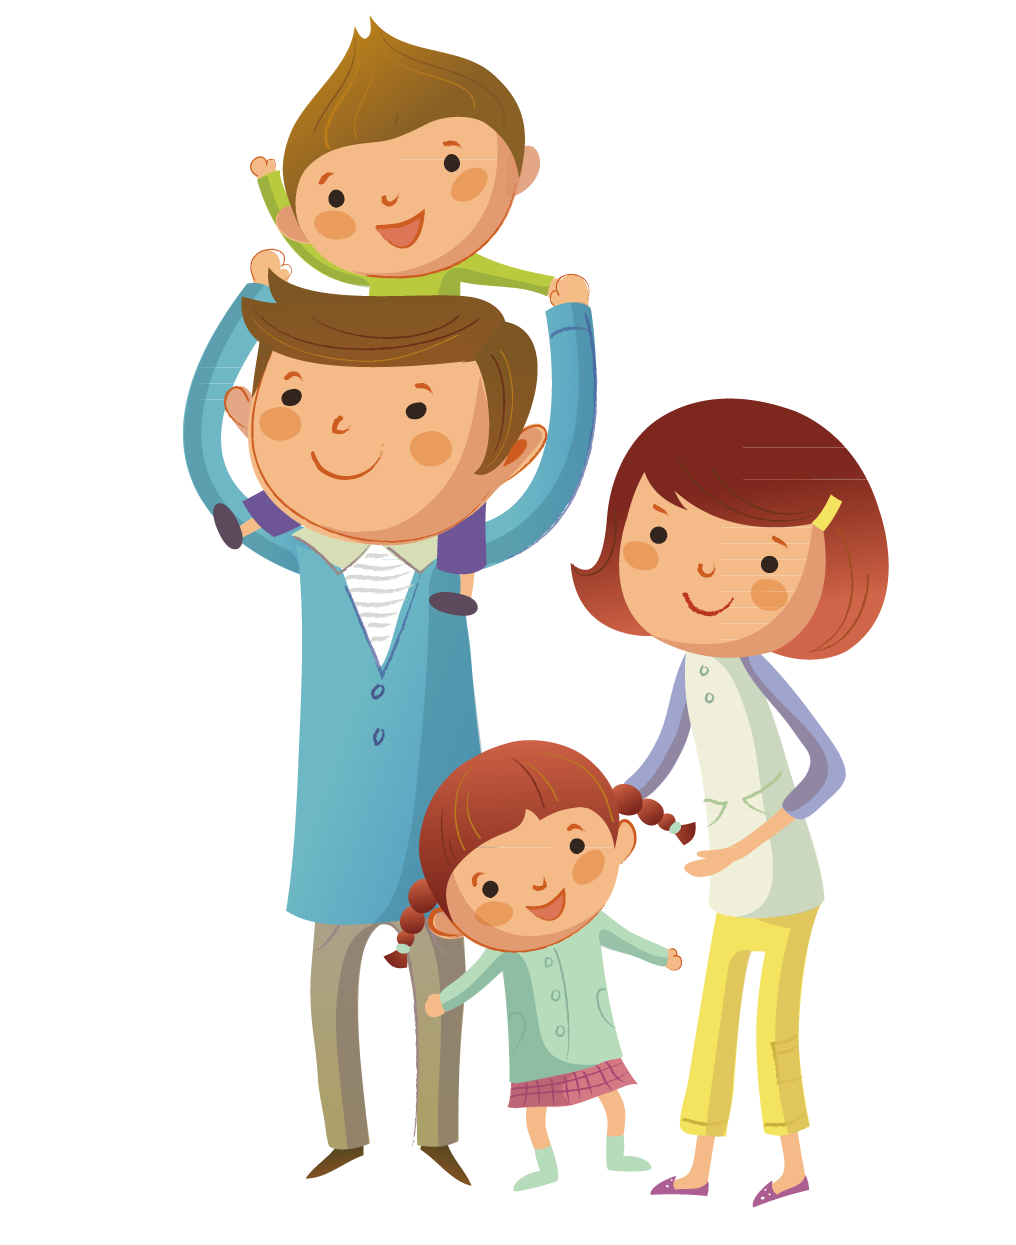 Art Parent Family Child Download Free Image PNG Image